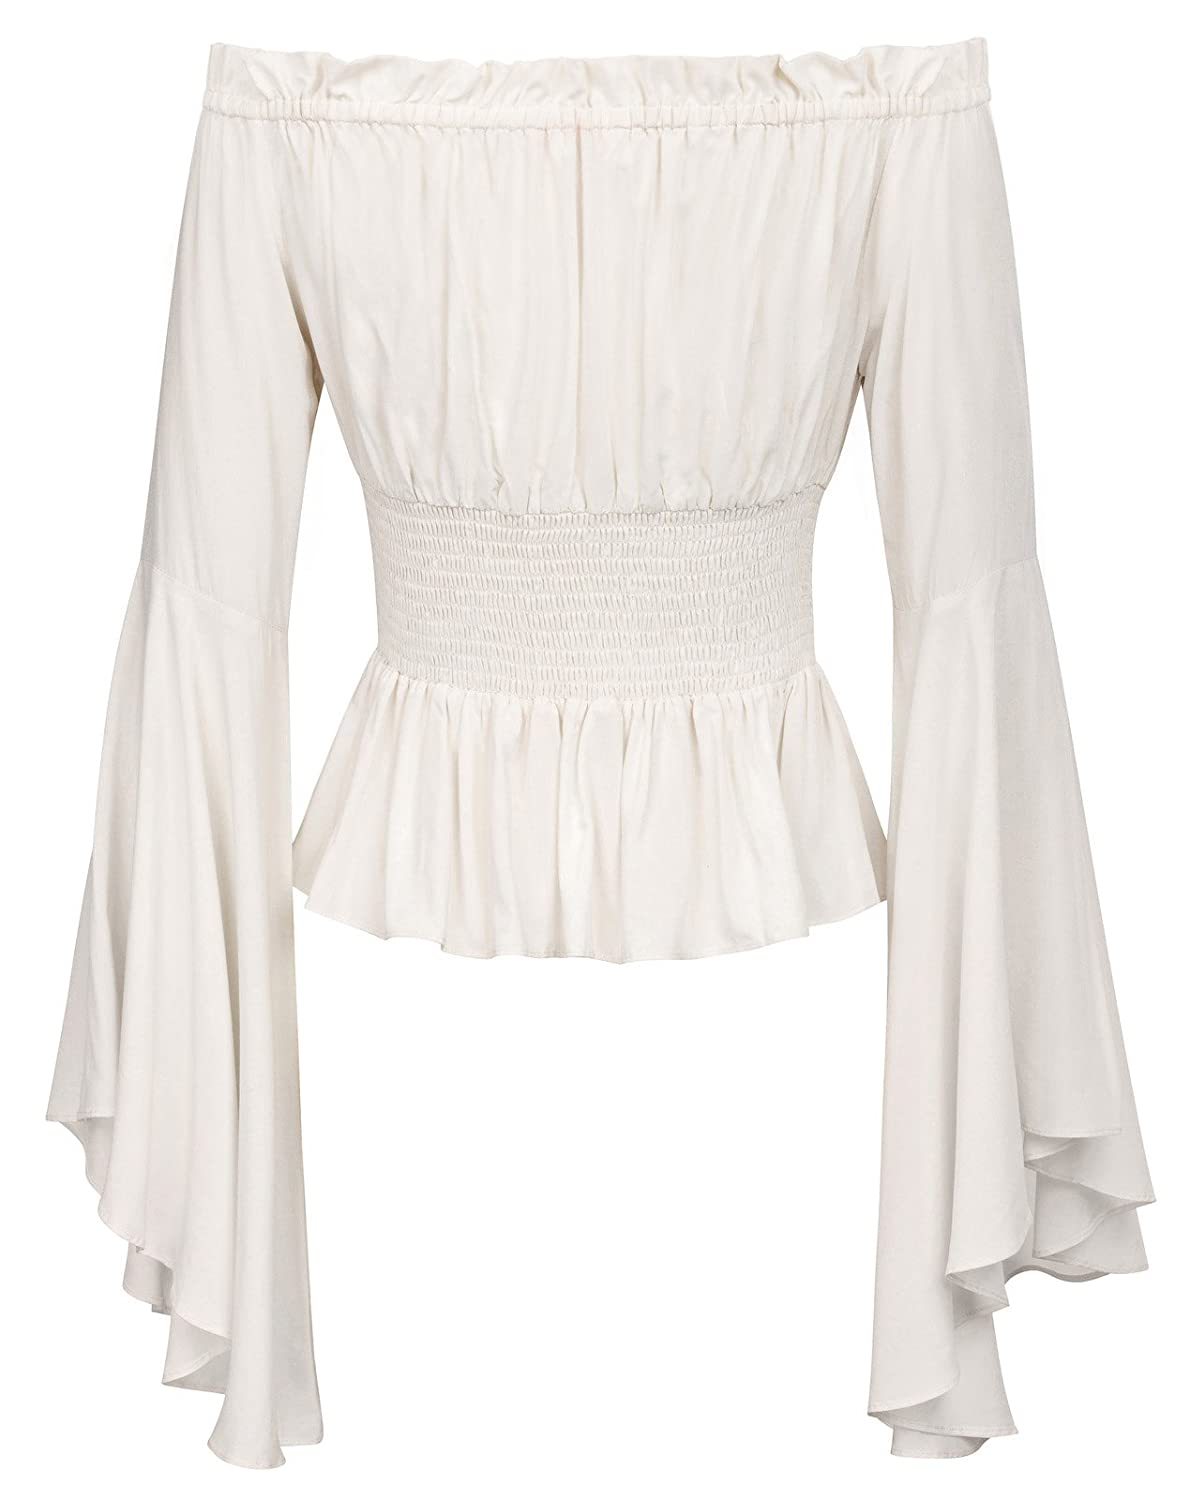 e1f974be59 Women s Full Bell Sleeves Retro Vintage Off Shoulder Tops Ivory Size S   Amazon.co.uk  Clothing